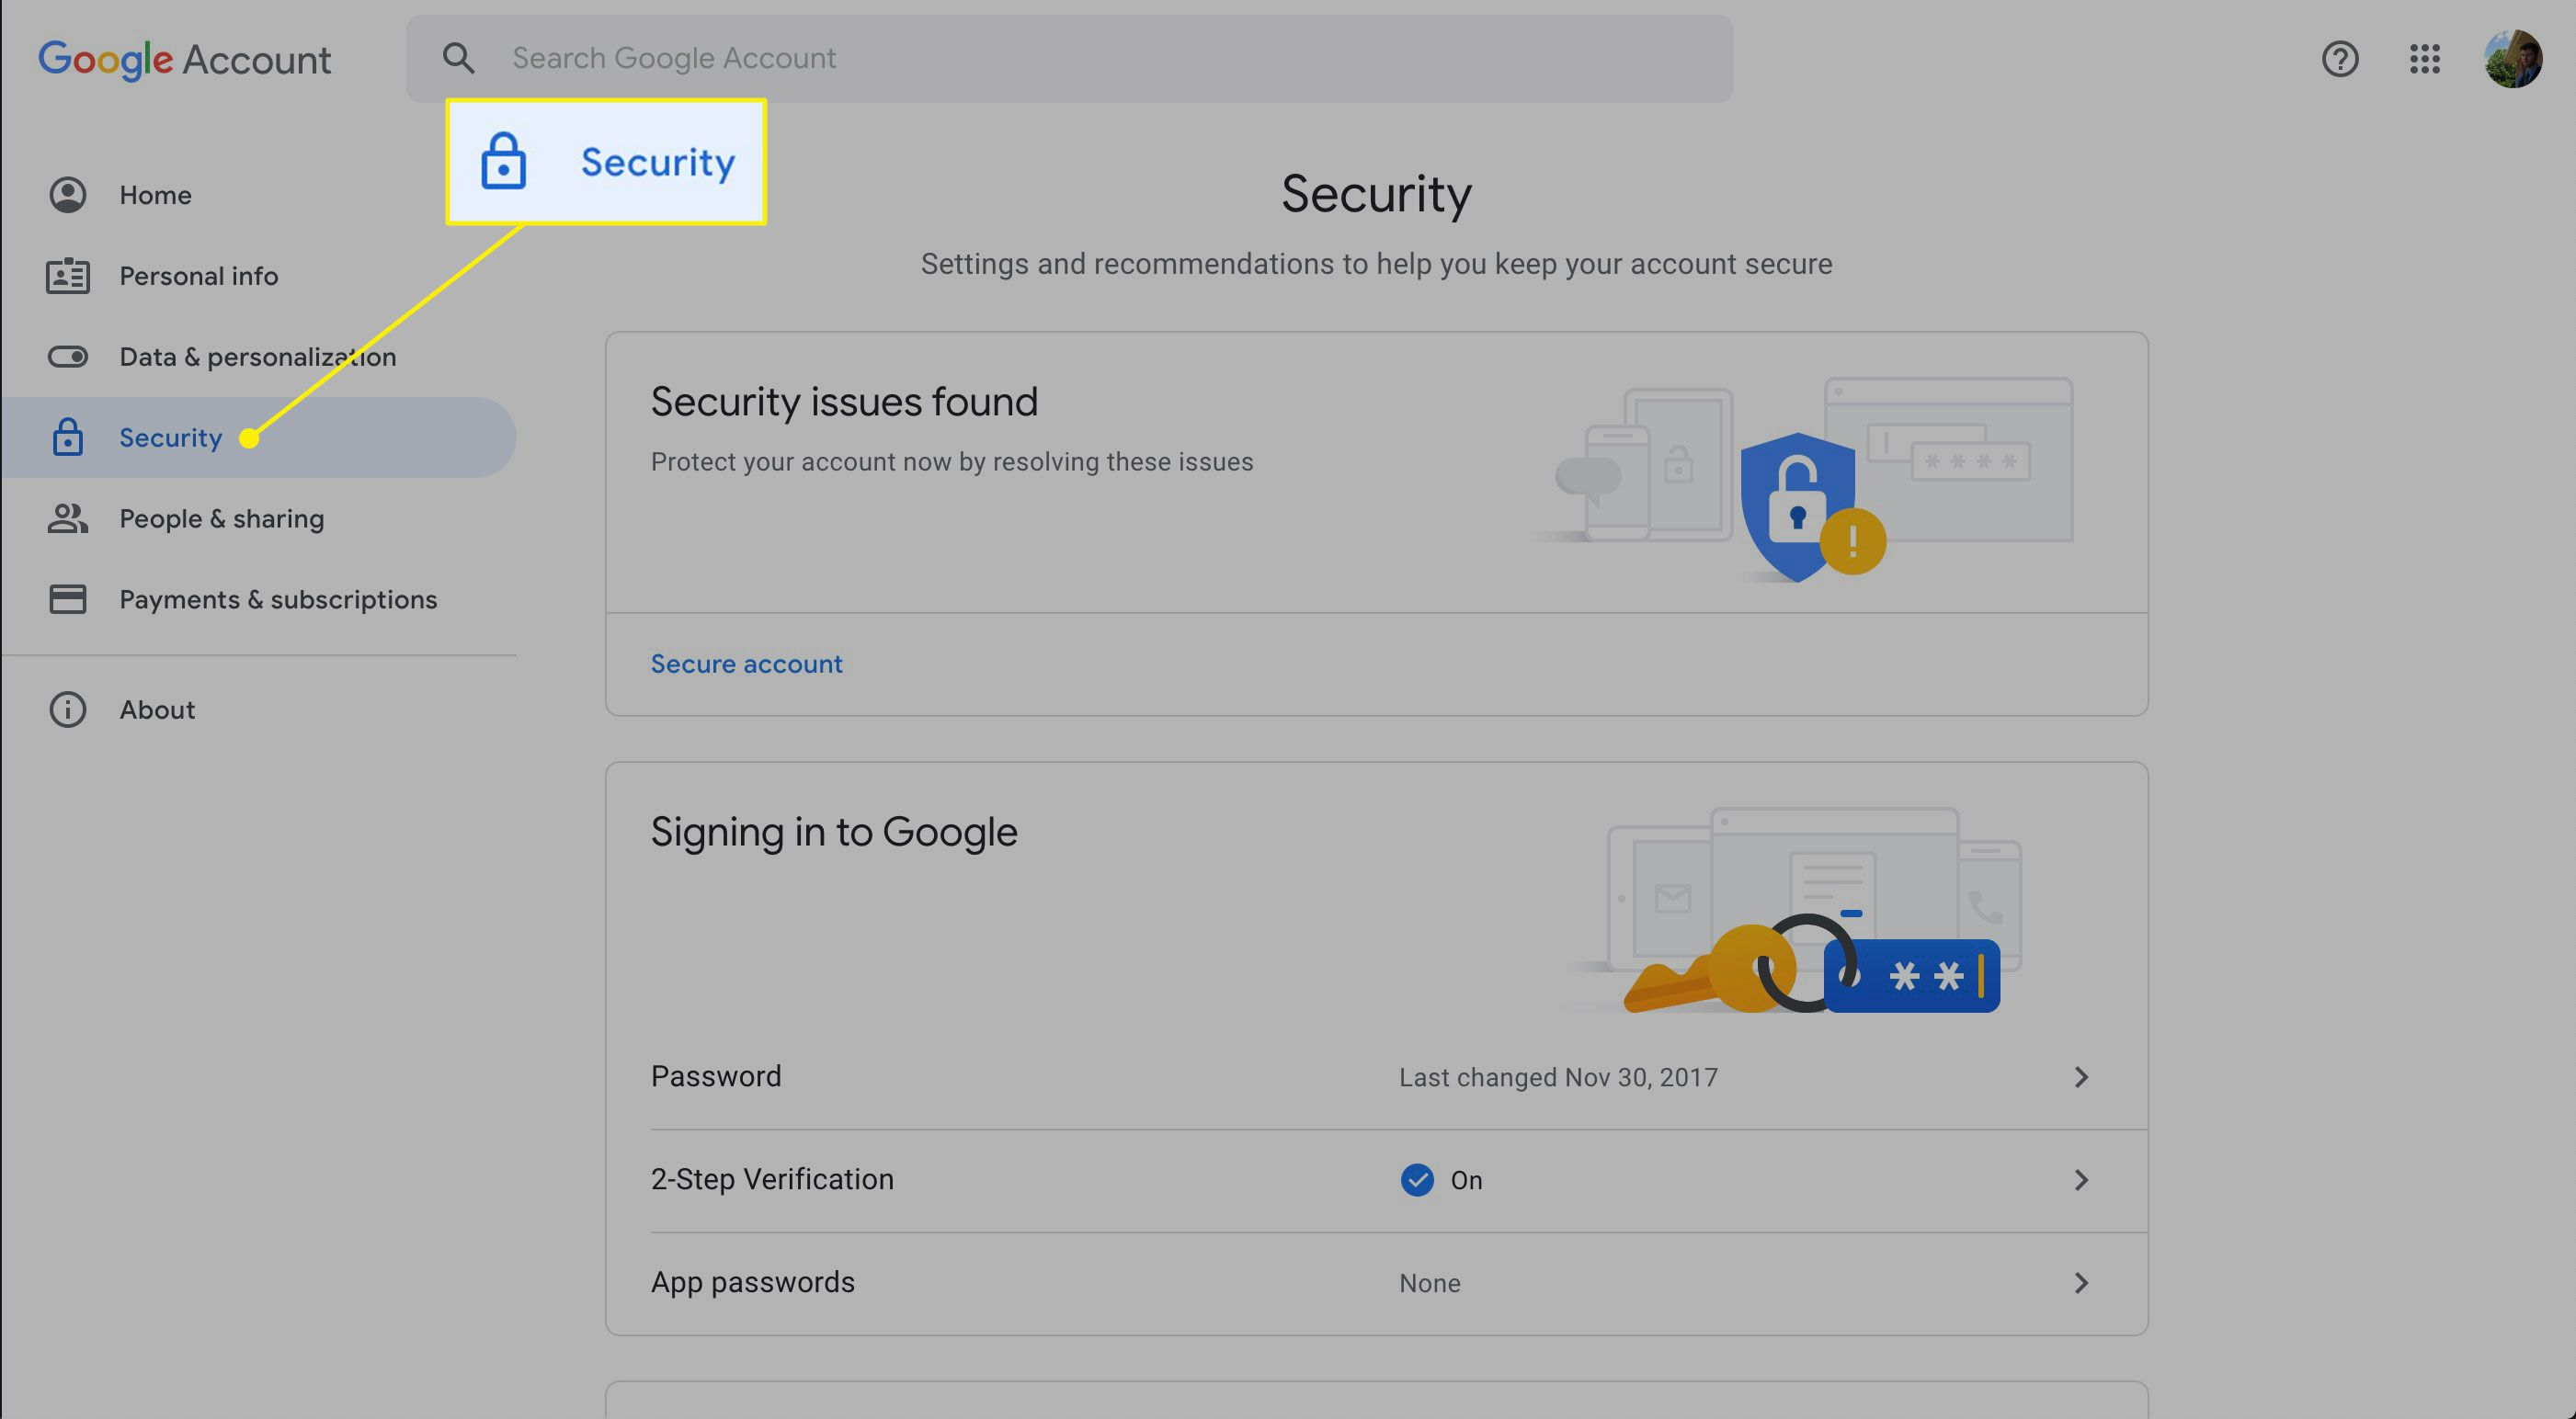 The Security section in Google Account